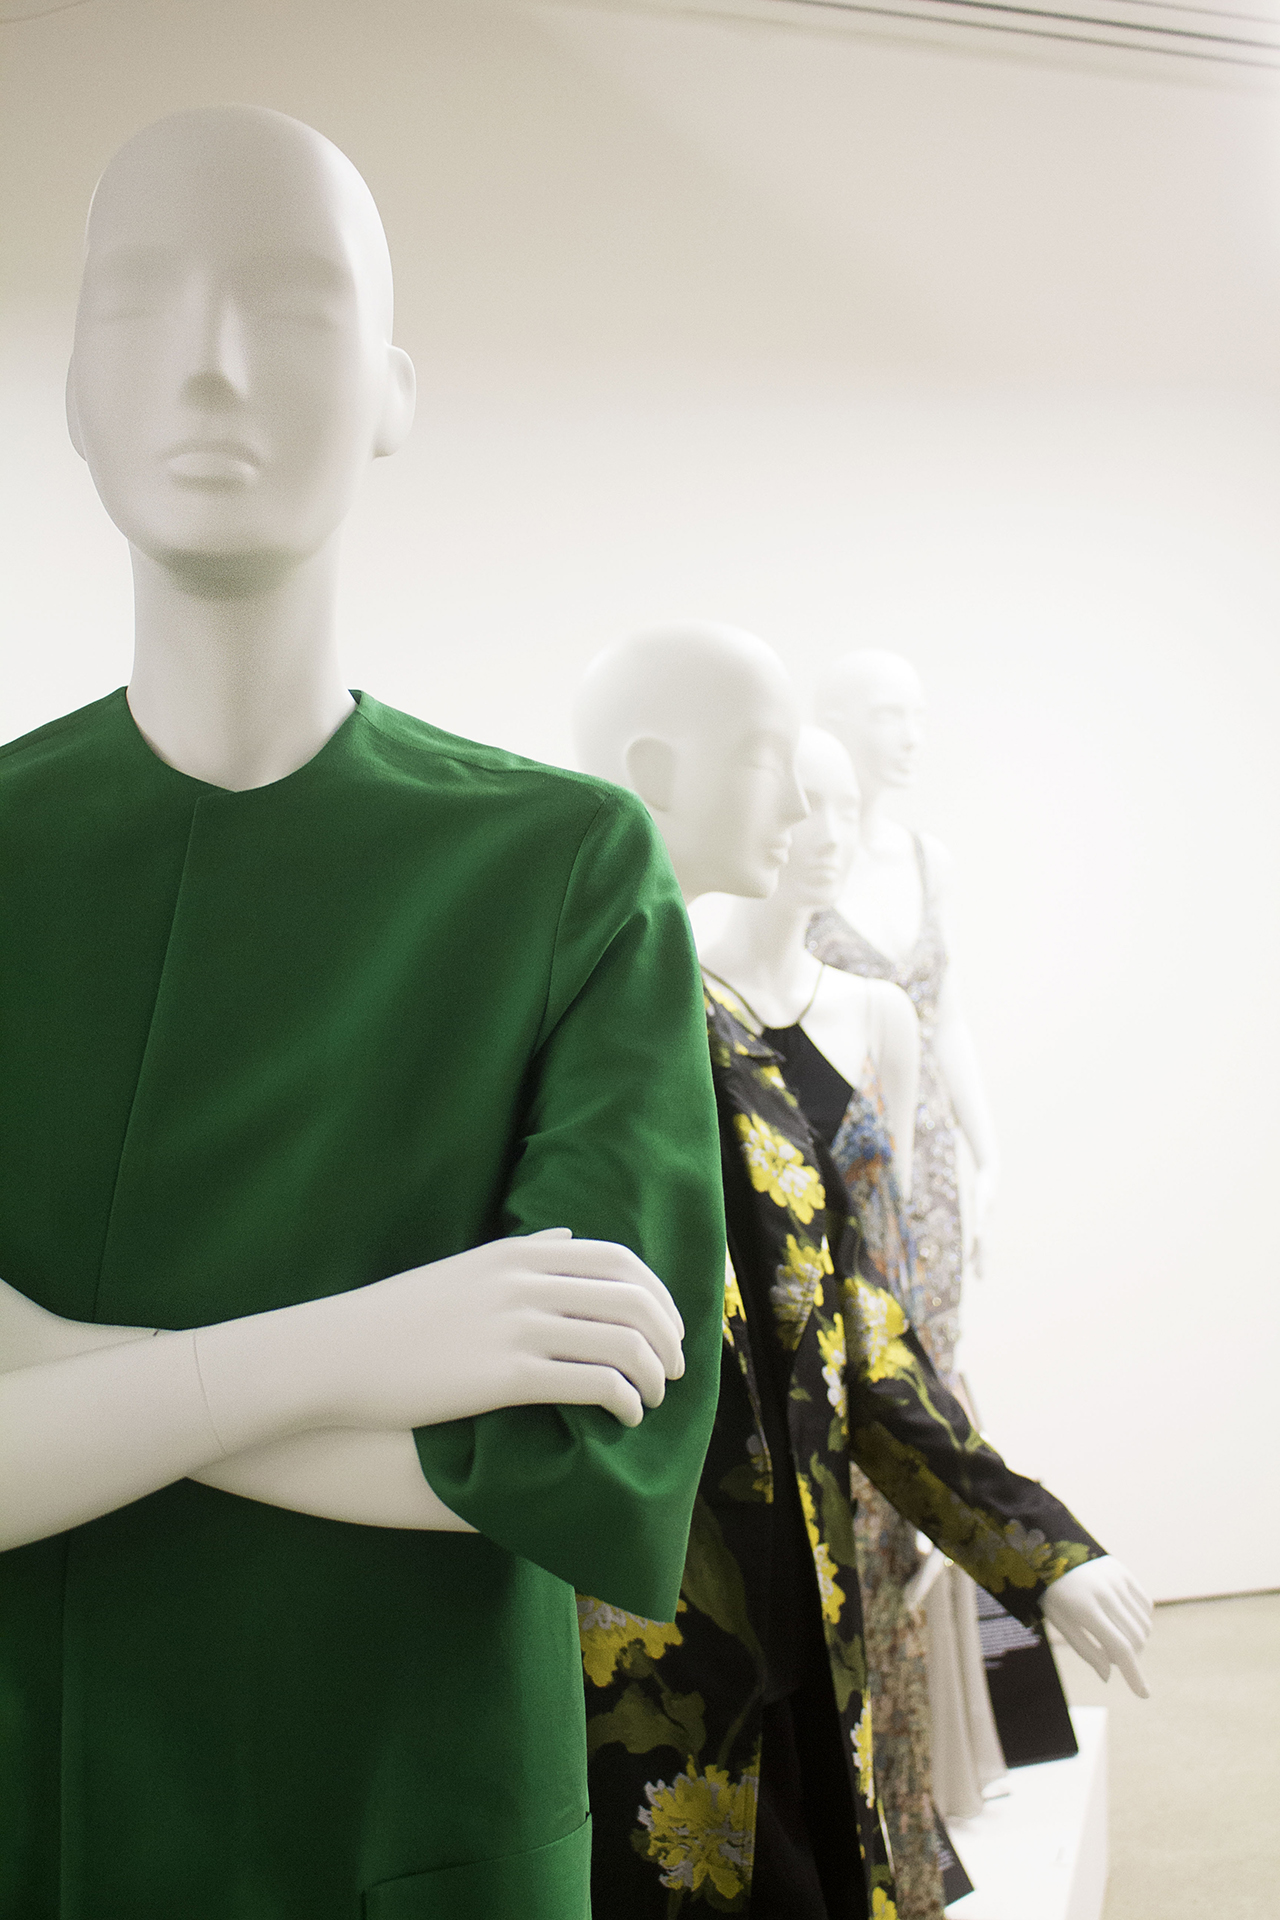 Women Fashion Power - Fashion Exhibition - Design Museum London Photography by Hannah Hutchins